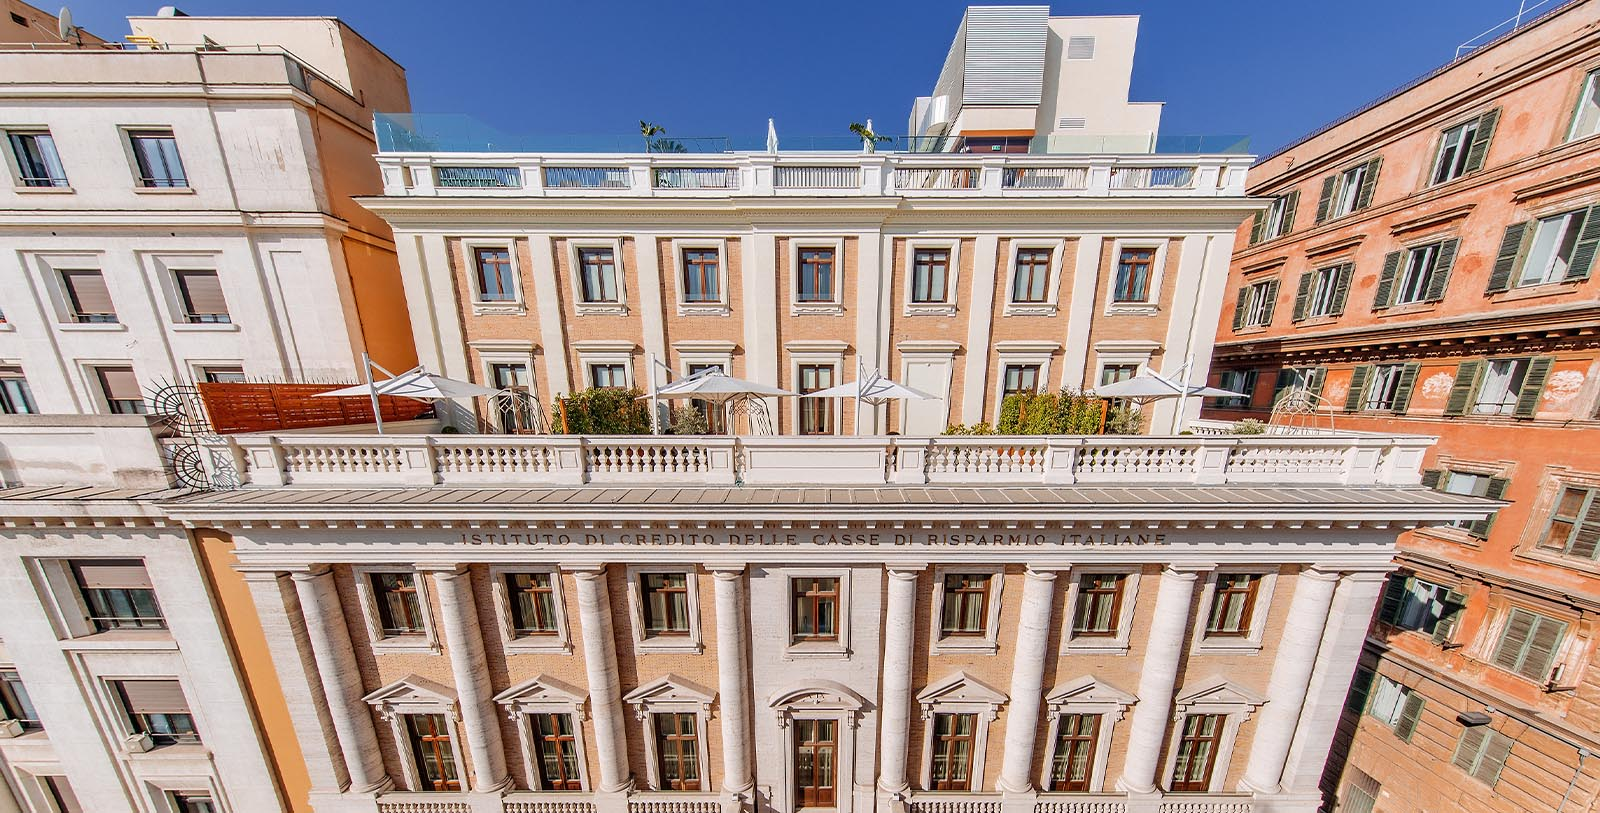 Image of hotel exterior Aleph Rome Hotel, Curio Collection by Hilton, 1930, Member of Historic Hotels Worldwide, in Rome, Italy, Special Offers, Discounted Rates, Families, Romantic Escape, Honeymoons, Anniversaries, Reunions